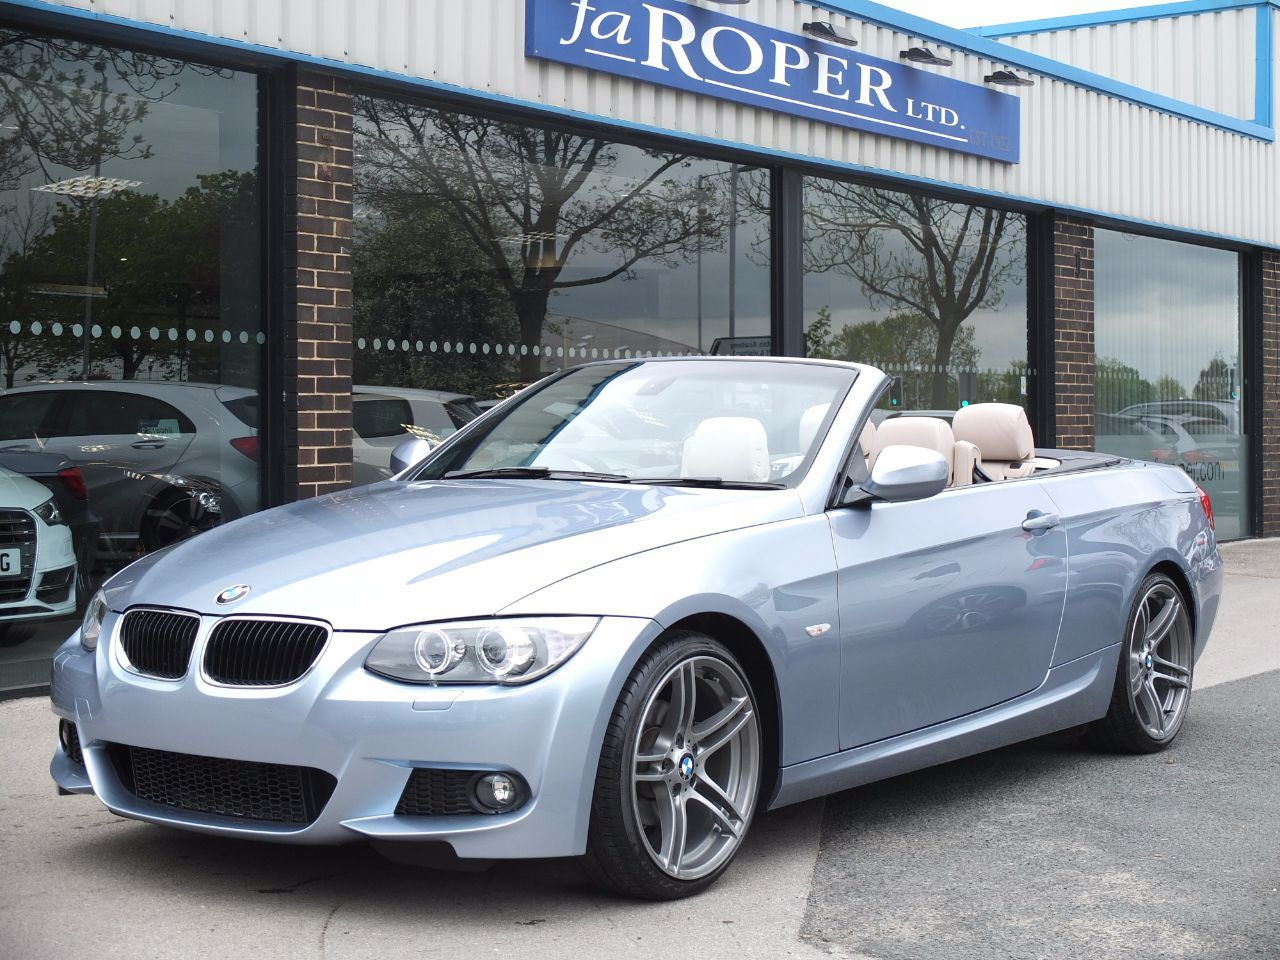 BMW 3 Series 2.0 320i M Sport Convertible Auto (1428 miles) Convertible Petrol Bluewater MetallicBMW 3 Series 2.0 320i M Sport Convertible Auto (1428 miles) Convertible Petrol Bluewater Metallic at fa Roper Ltd Bradford